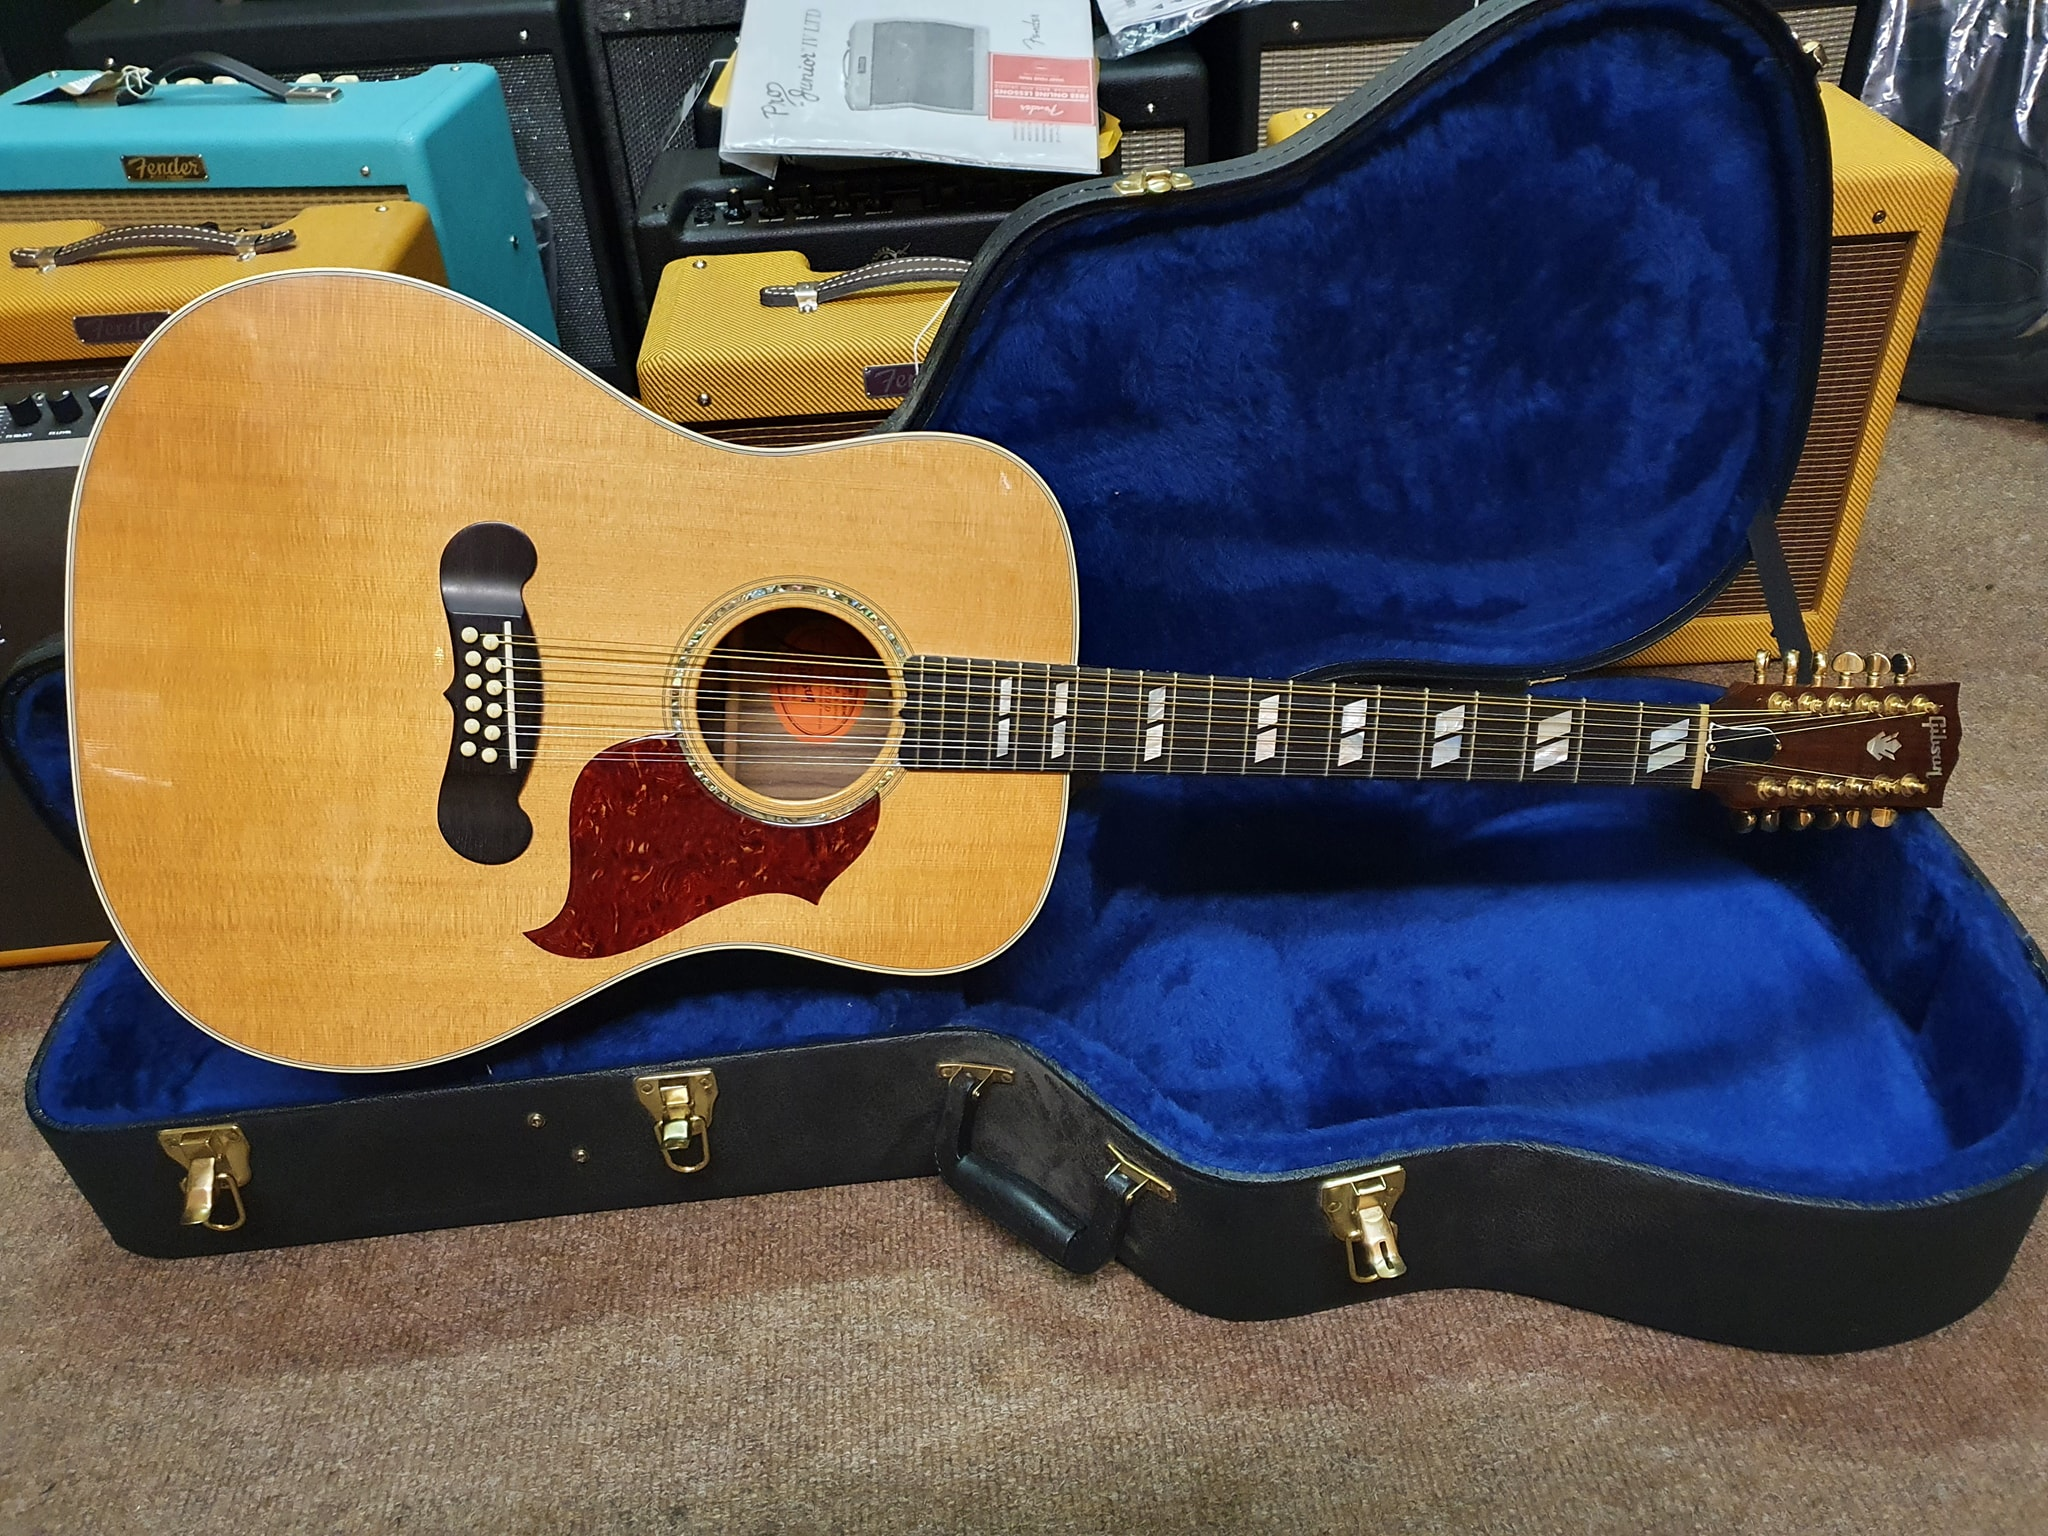 2006 Gibson Songwriter Deluxe 12 String